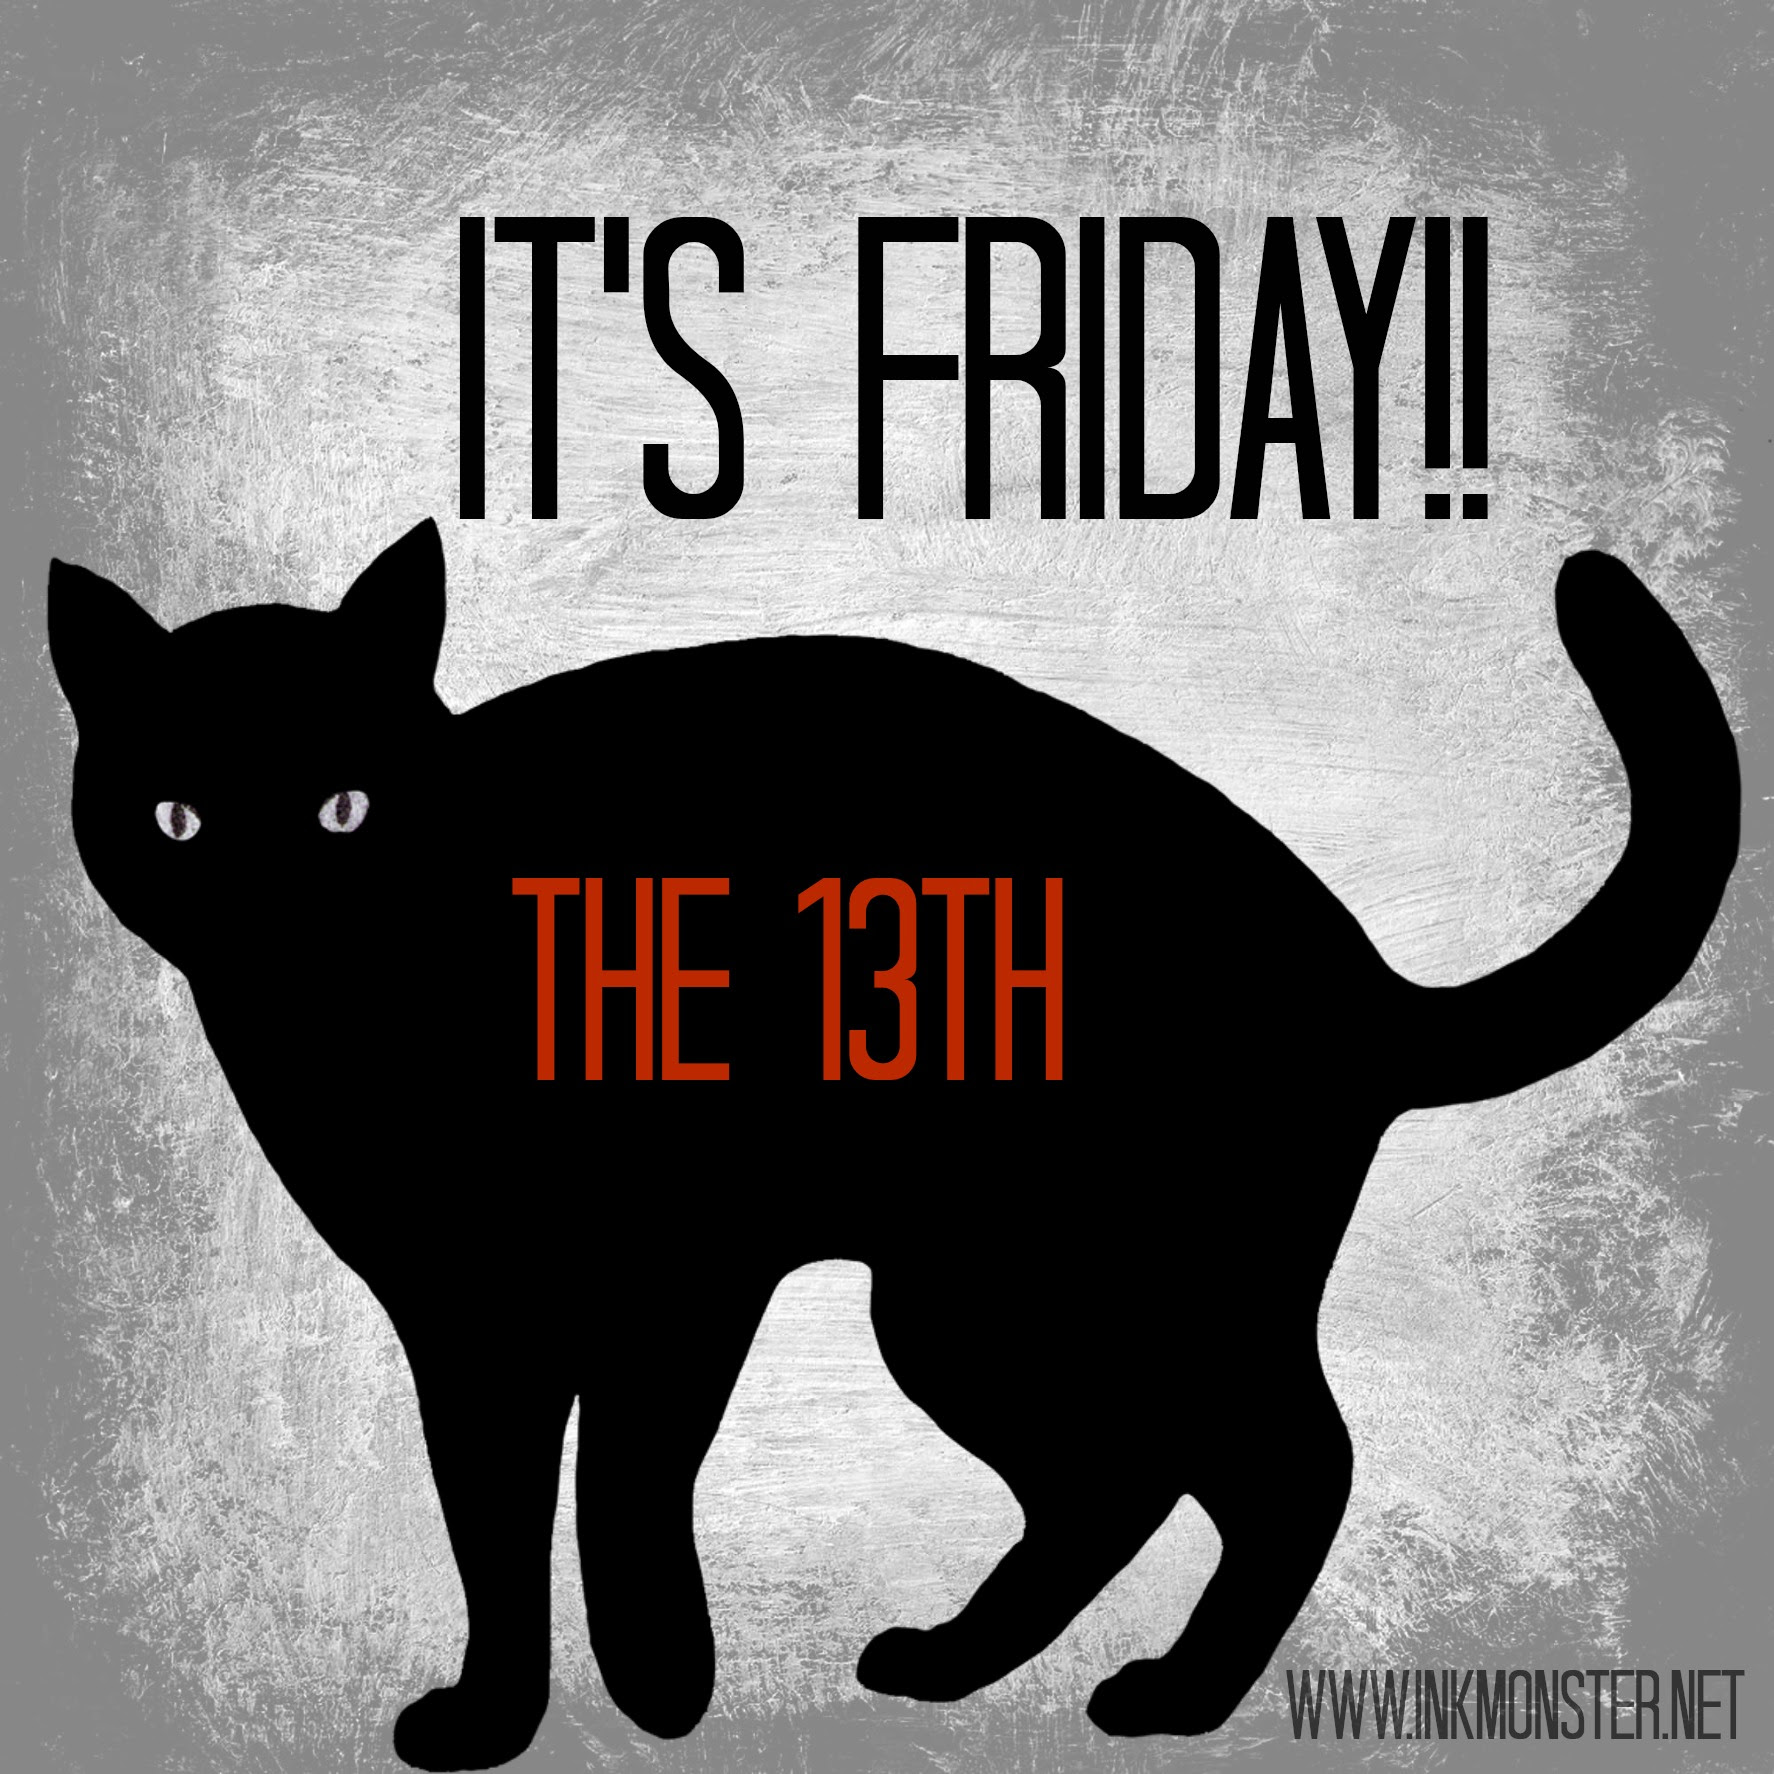 Friday The 13th Historical Facts Thomas Ford Memorial Library